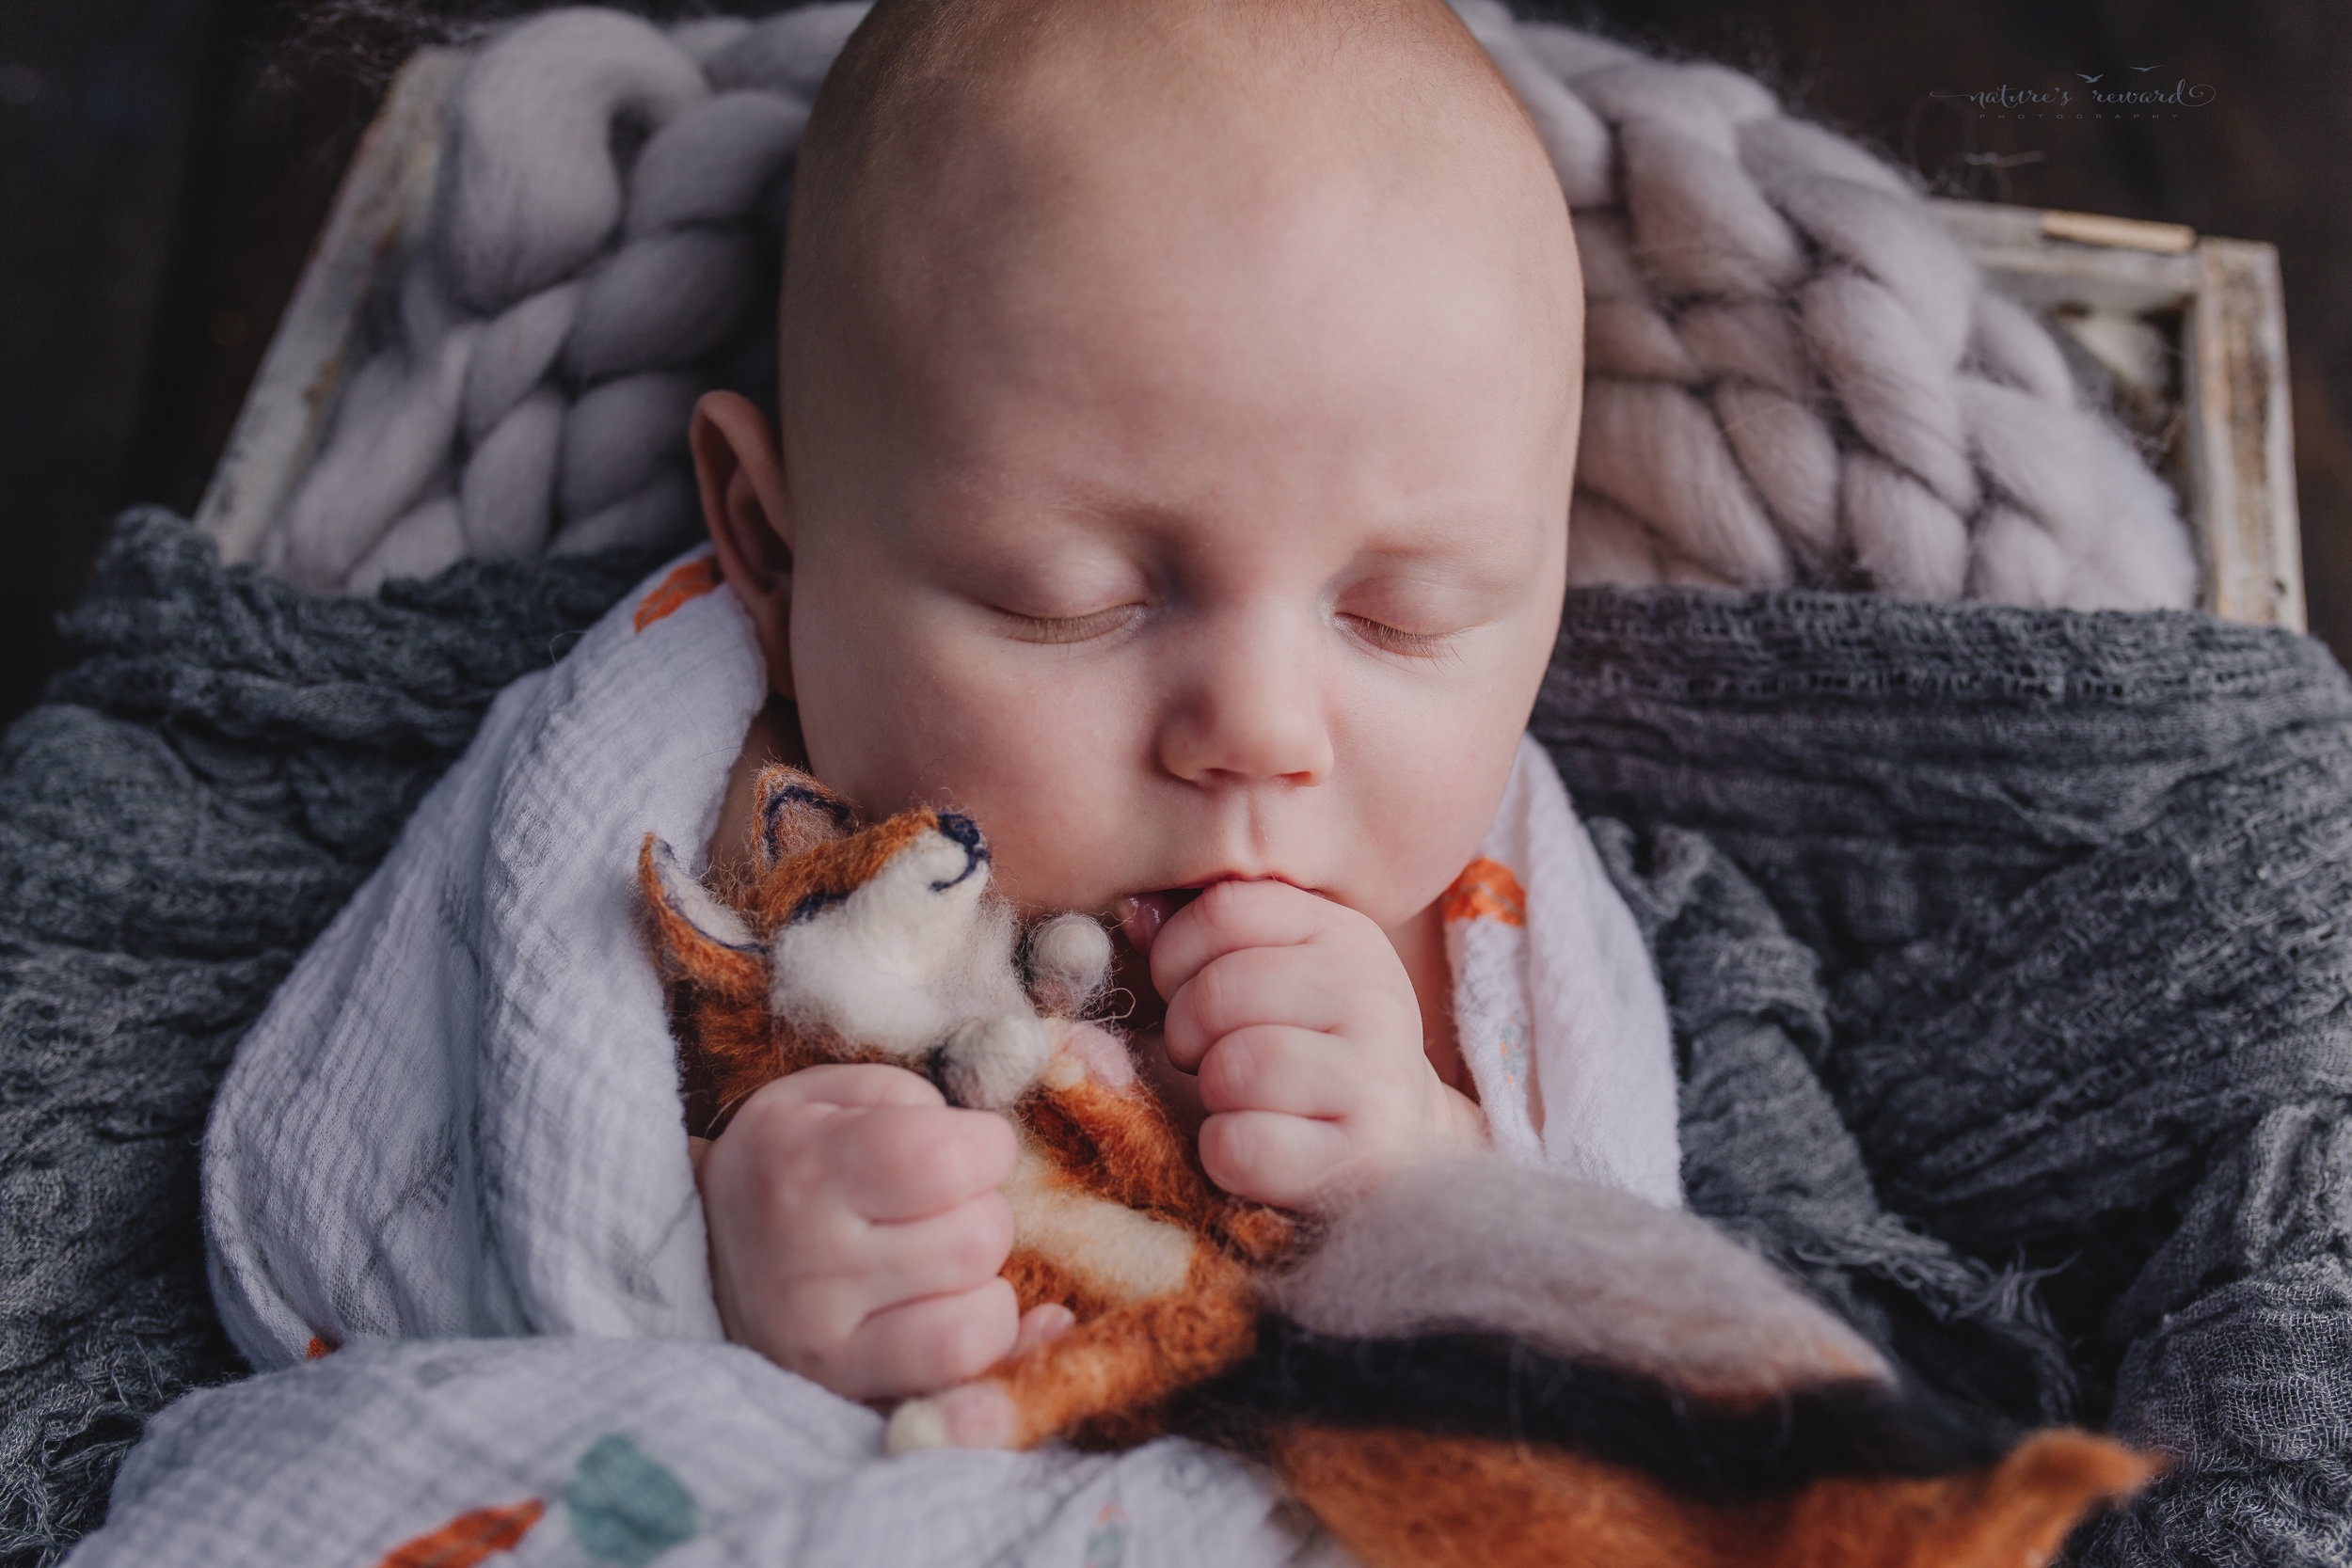 Two month old baby boy newborn baby boy session in a box on a wood floor wrapped In his swaddling blanket from home sucking his thumb and holding baby fox stuffed animal- a portrait by Nature's Reward Photography